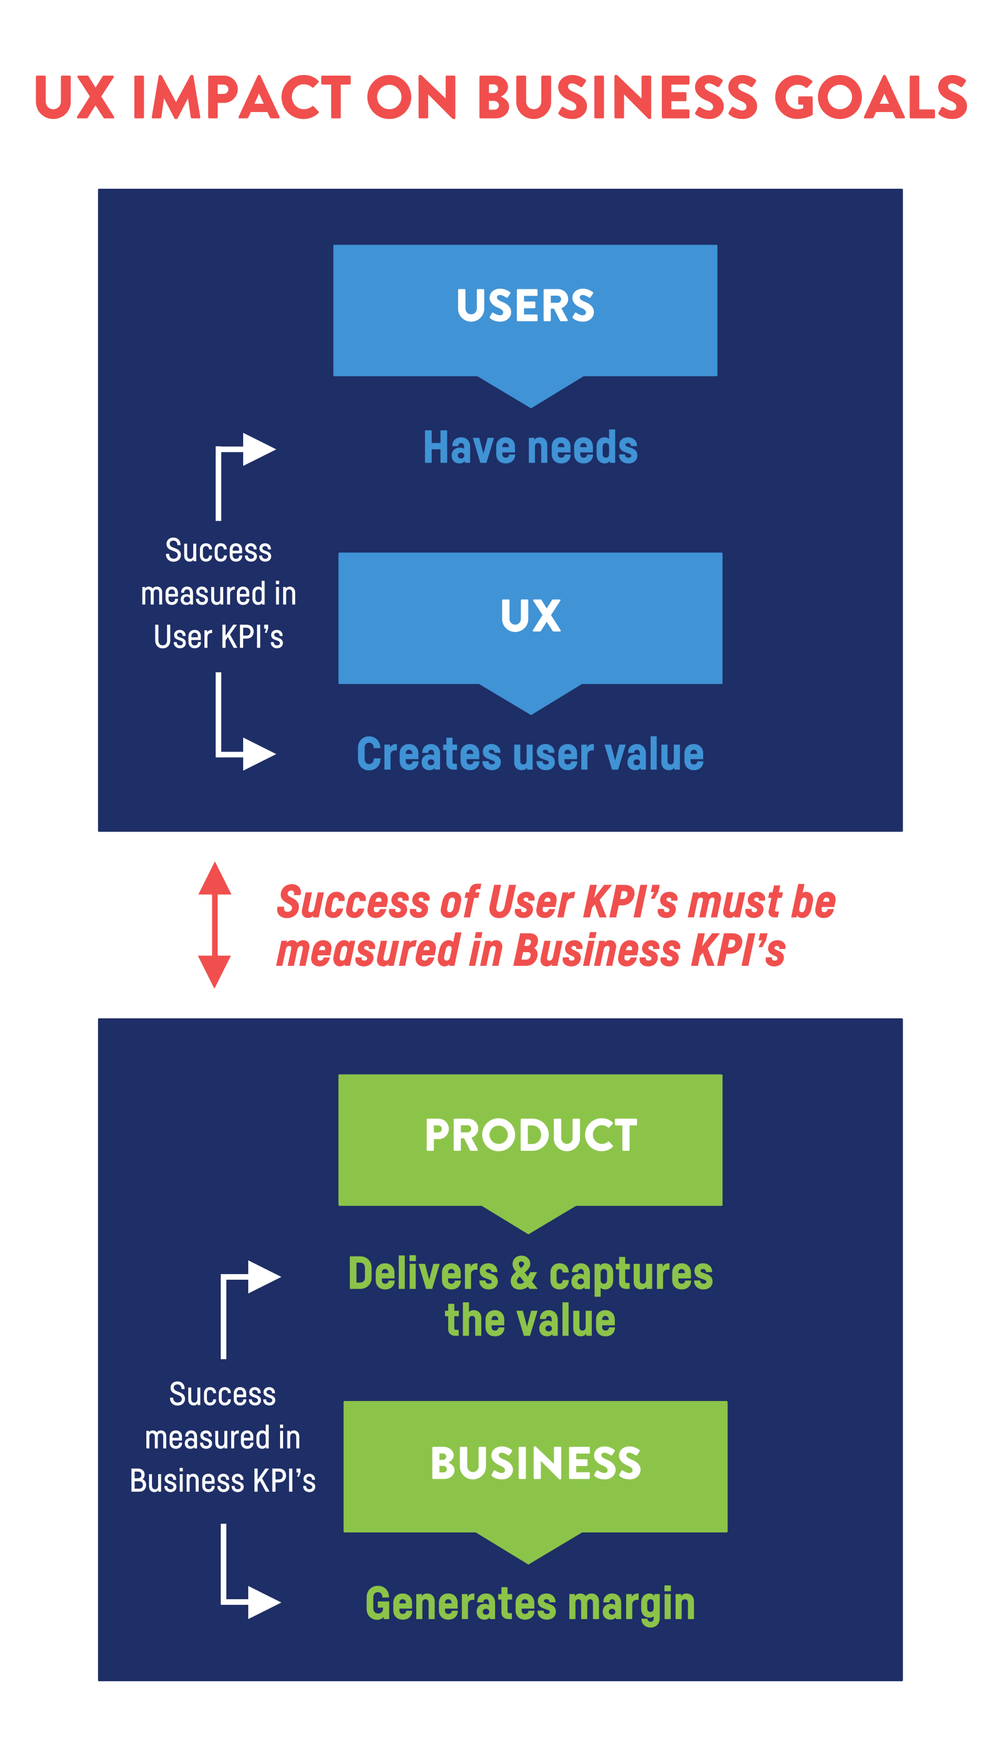 The future of UX relies on UX.